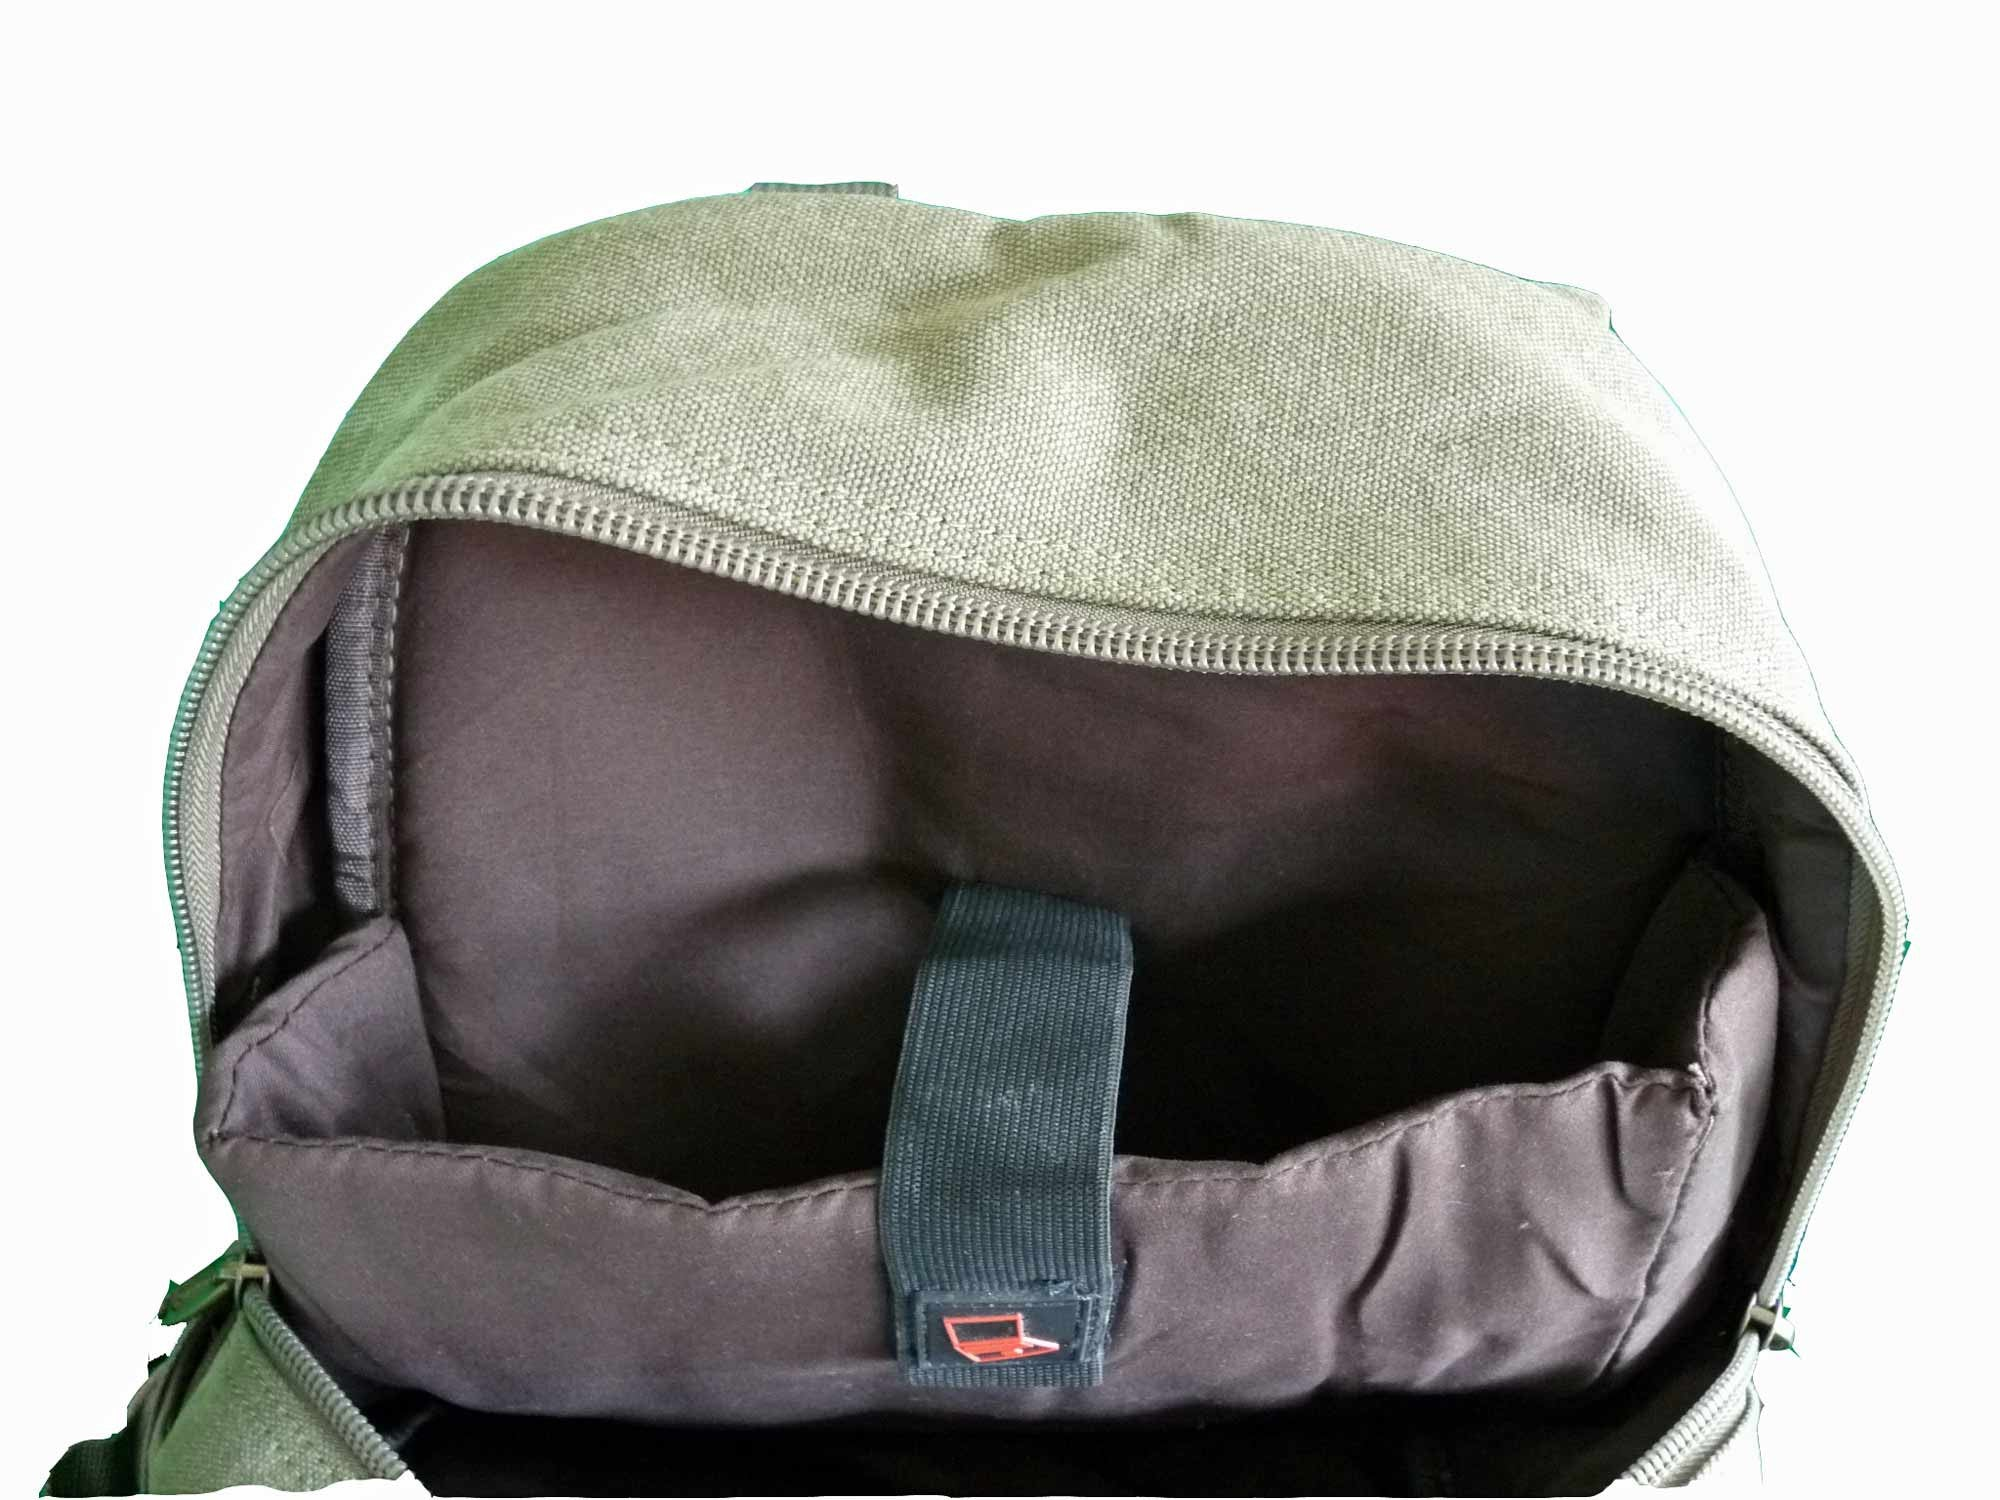 MacBook Air Backpack Rucksack Bag RL25G laptop view